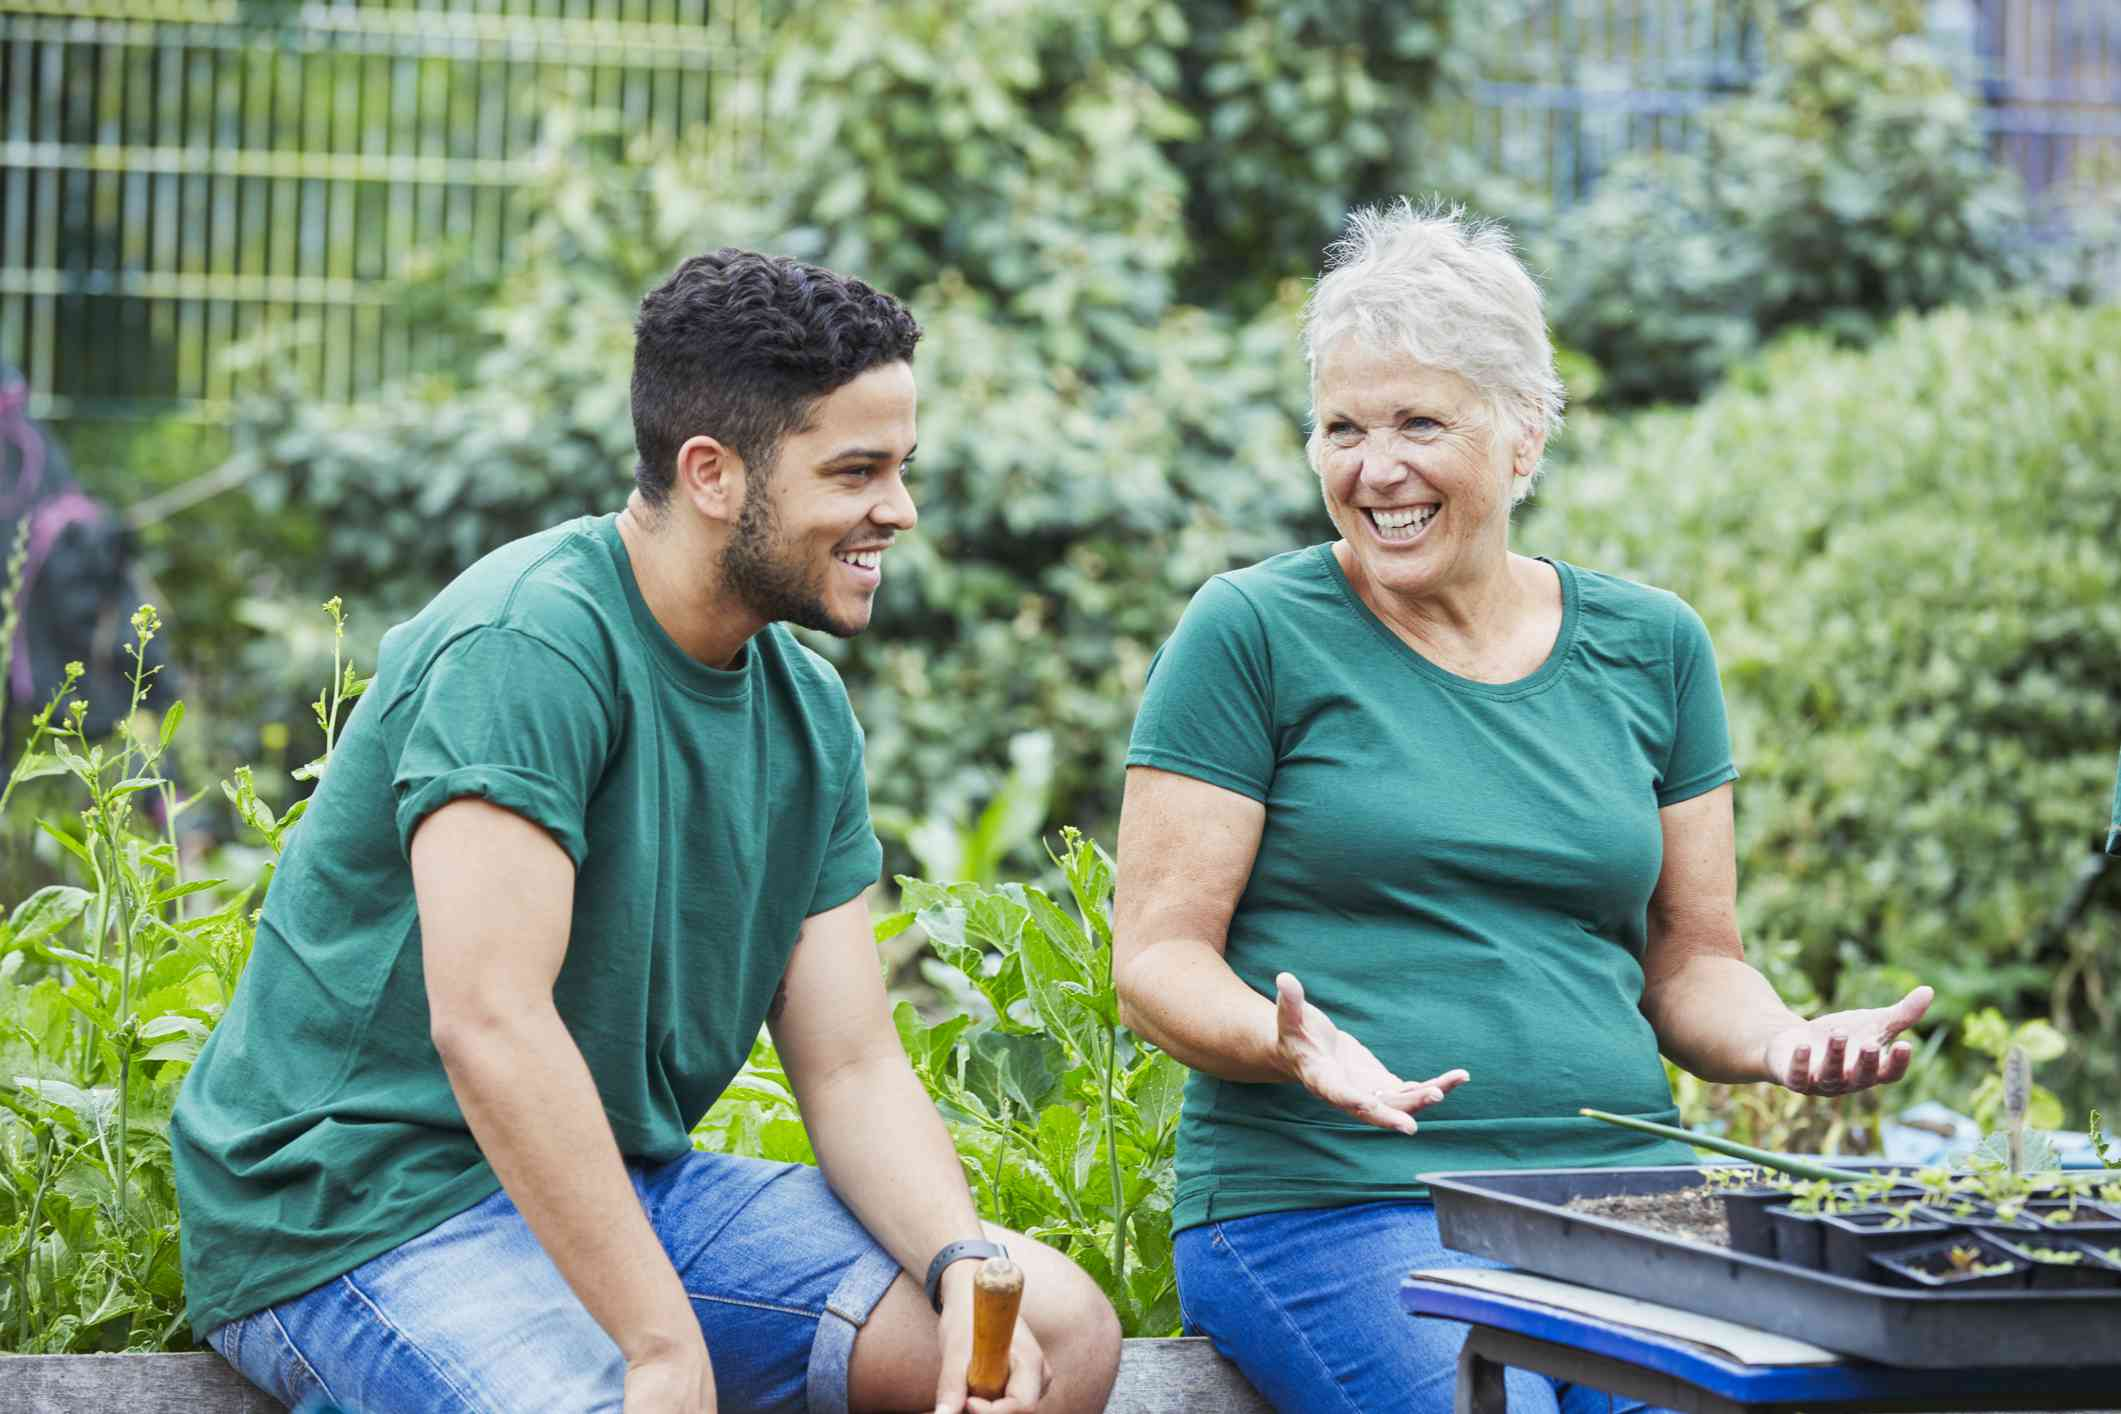 Man and woman laugh together in garden